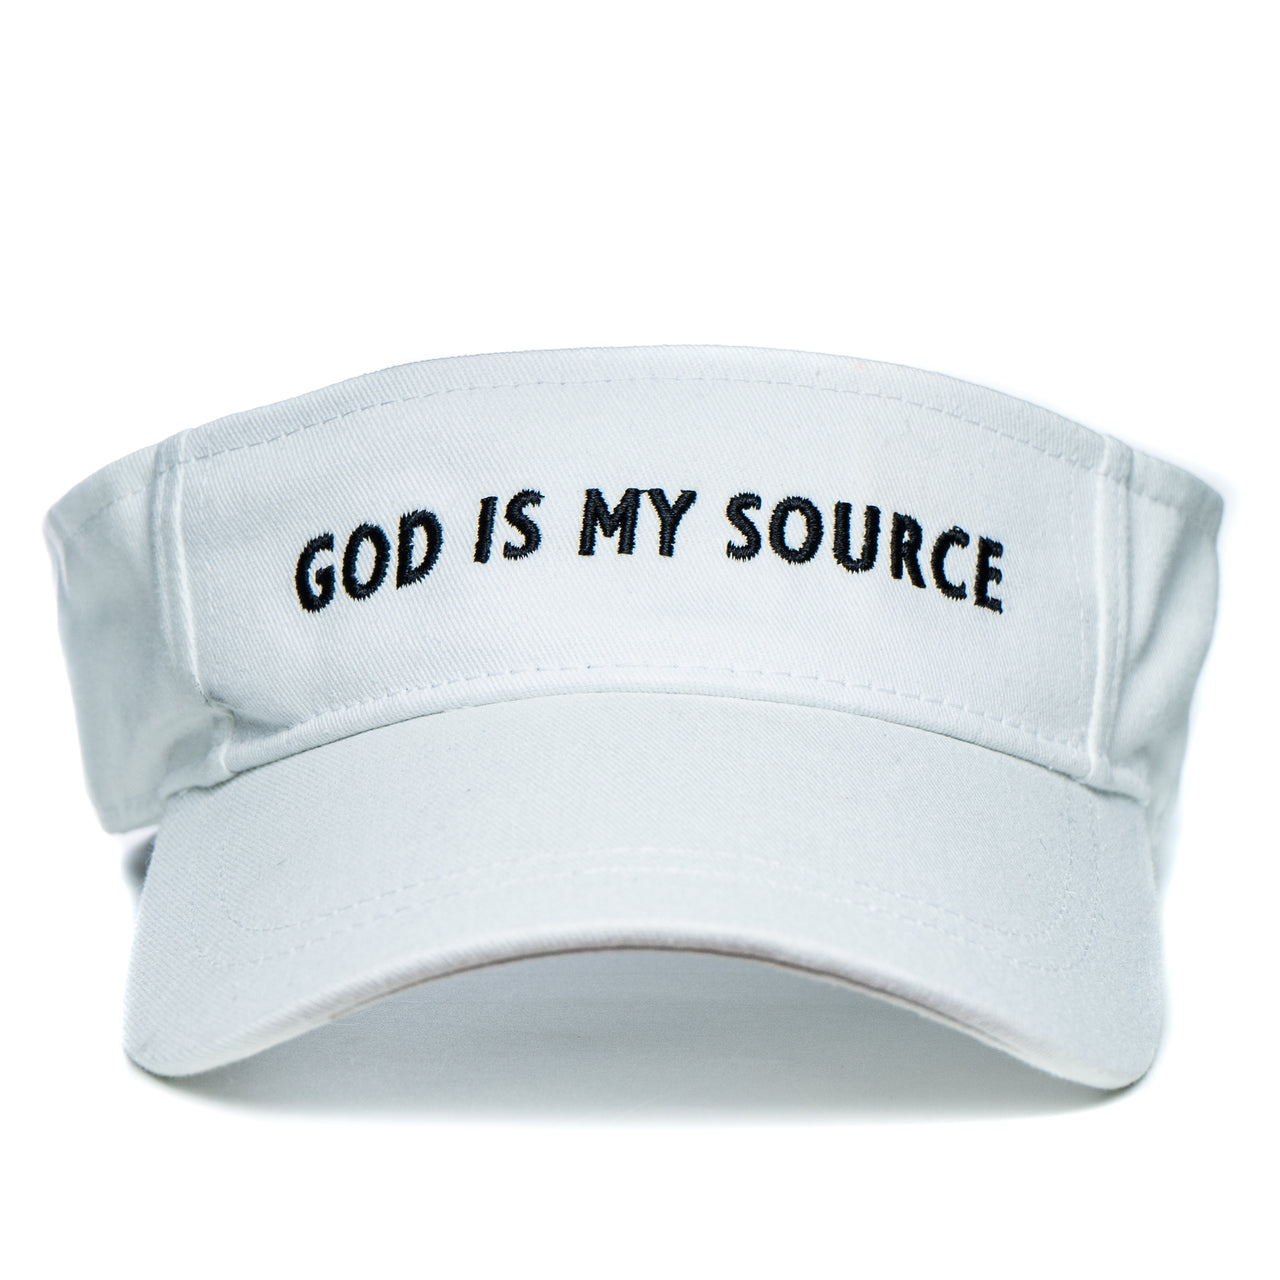 God Is My Source Visor White/Black - Visor God Is My Source